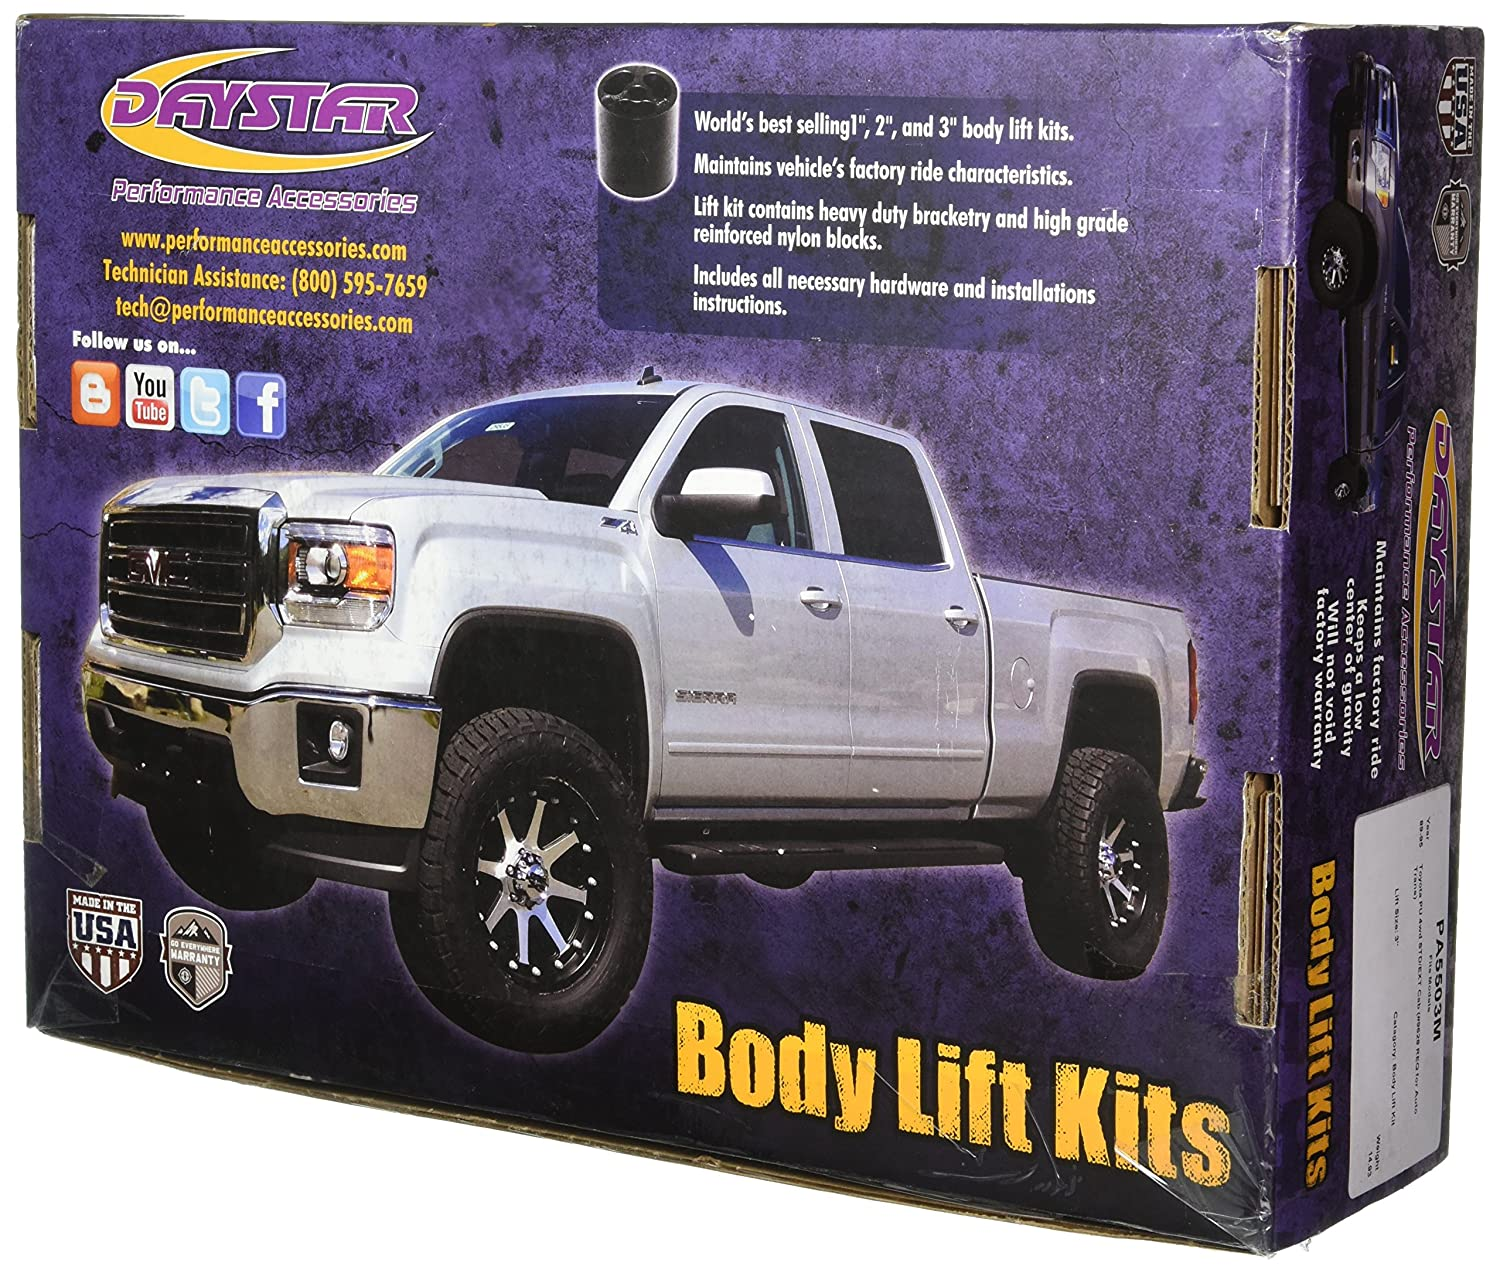 Toyota Pickup 4WD Std//Ext Cab 3 Body Lift Kit PA5503M Performance Accessories #9628 Req For Auto Trans 3 Body Lift Kit Made in America Toyota Pickup 4WD Std//Ext Cab #9628 Req For Auto Trans fits 1989 to 1995